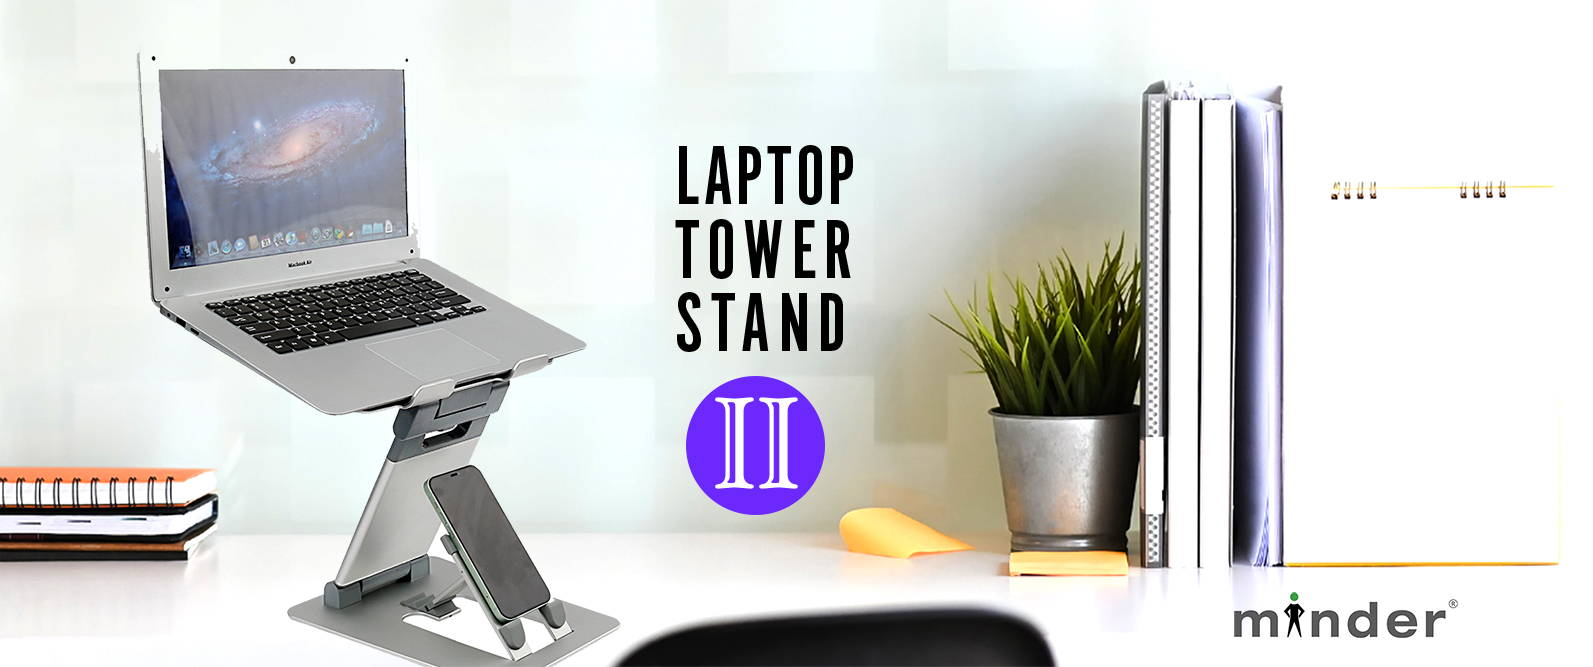 Picture of Laptop Tower II stand on a desk with books